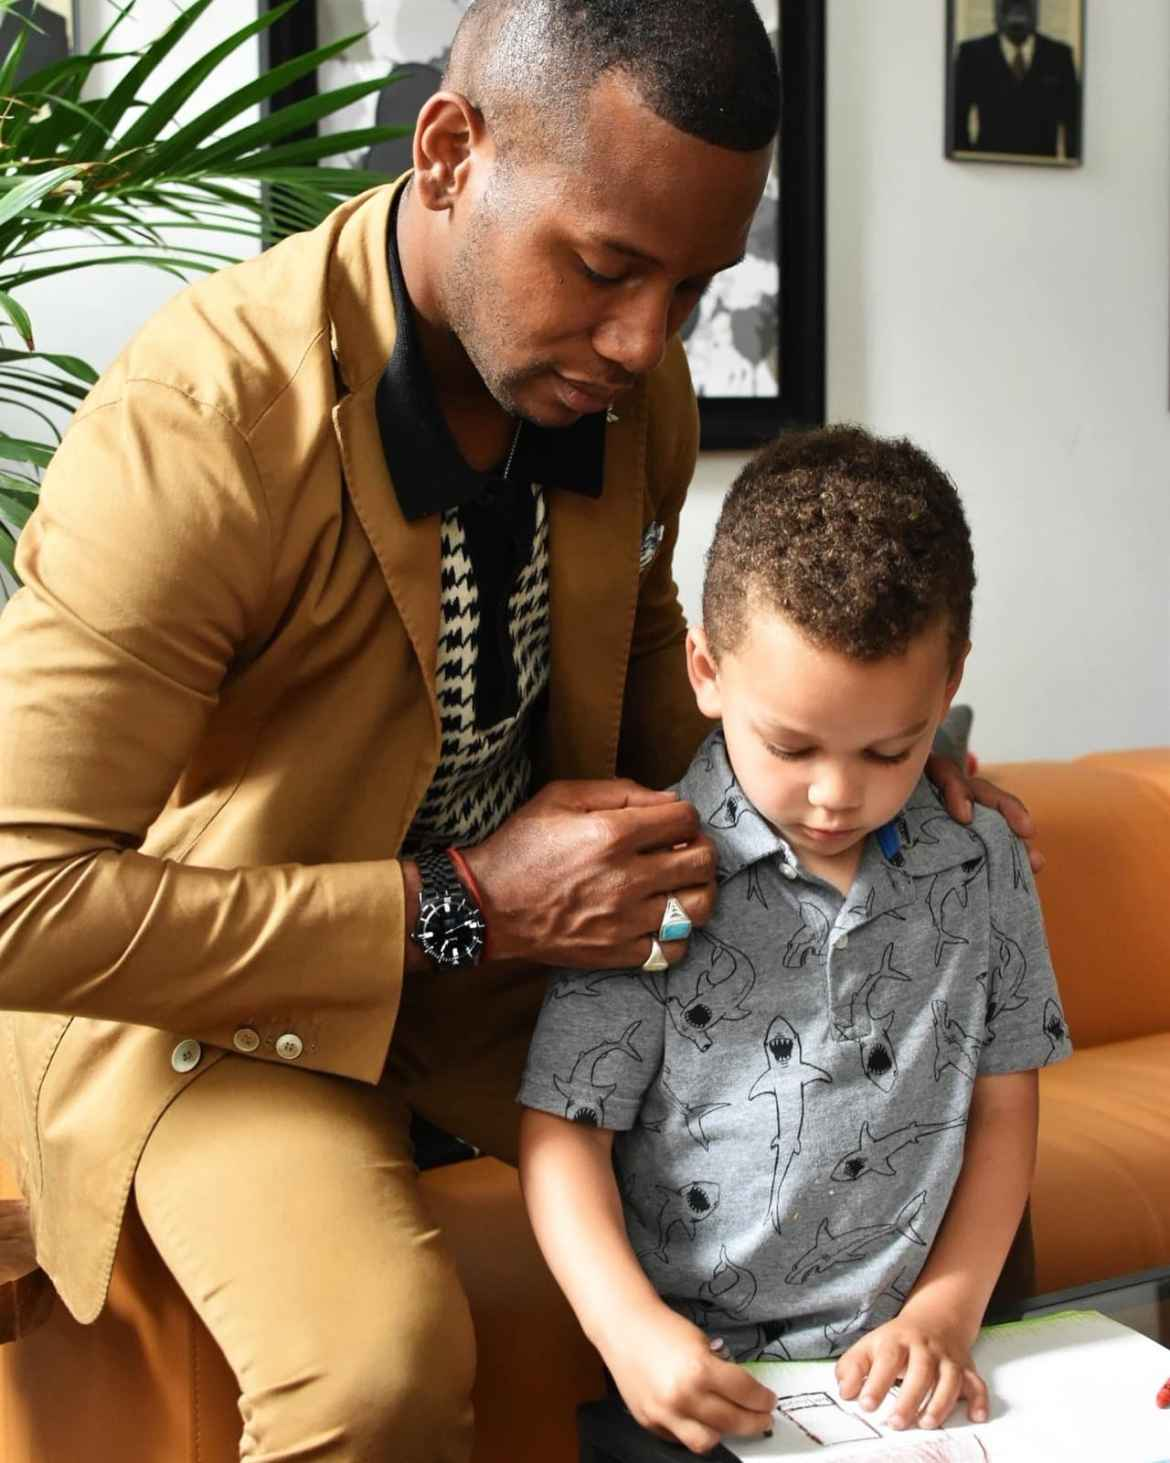 Black Dad Sabir M. Peele of Men's Style Pro with son Hendrix